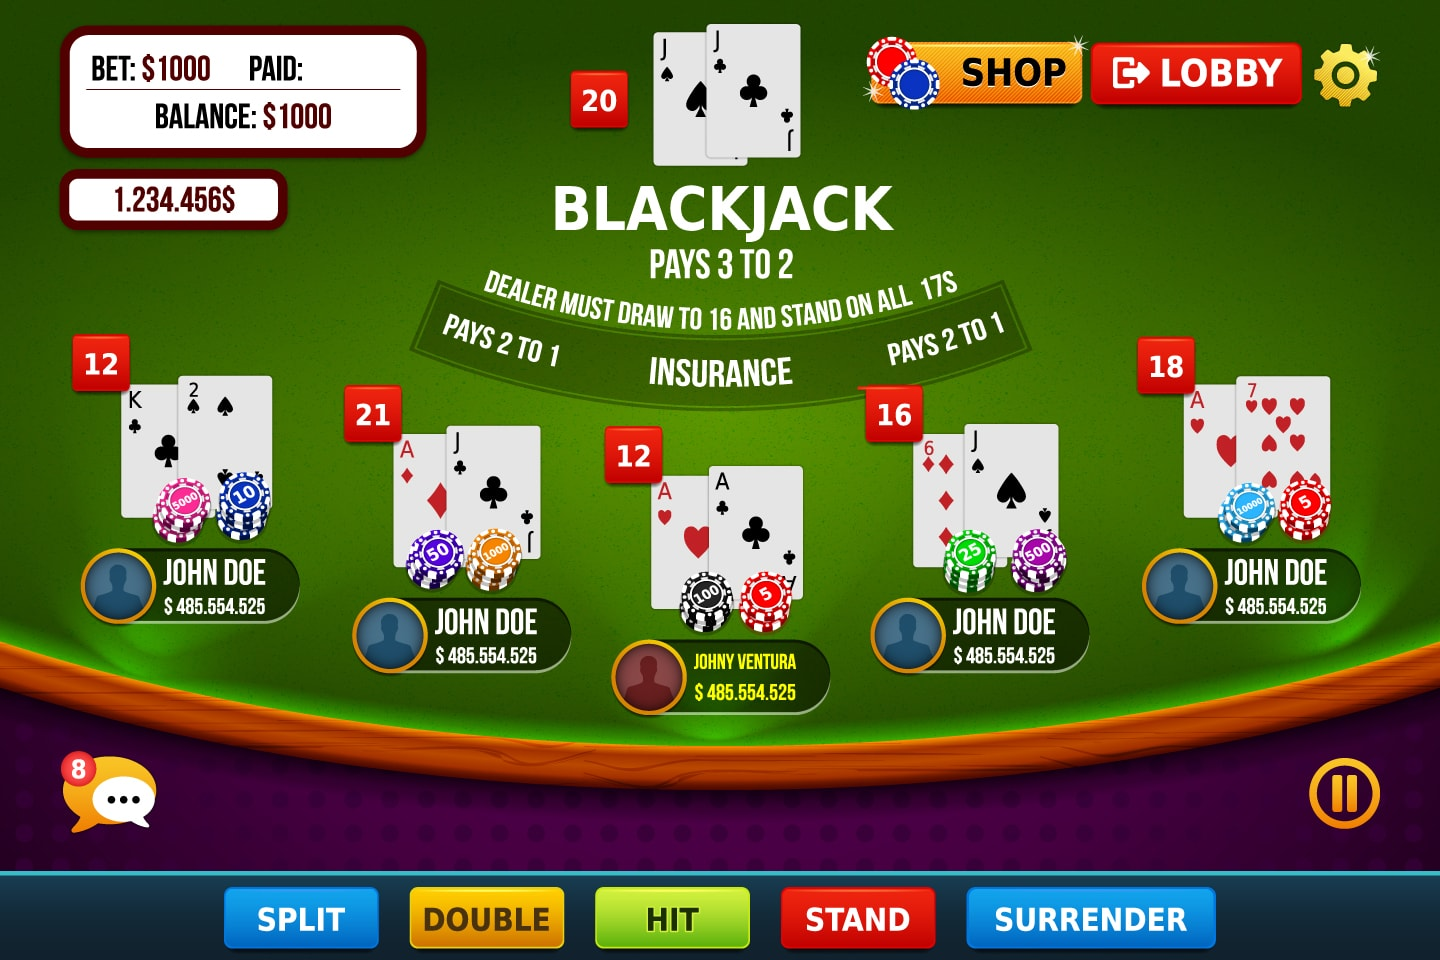 Blachjack Game